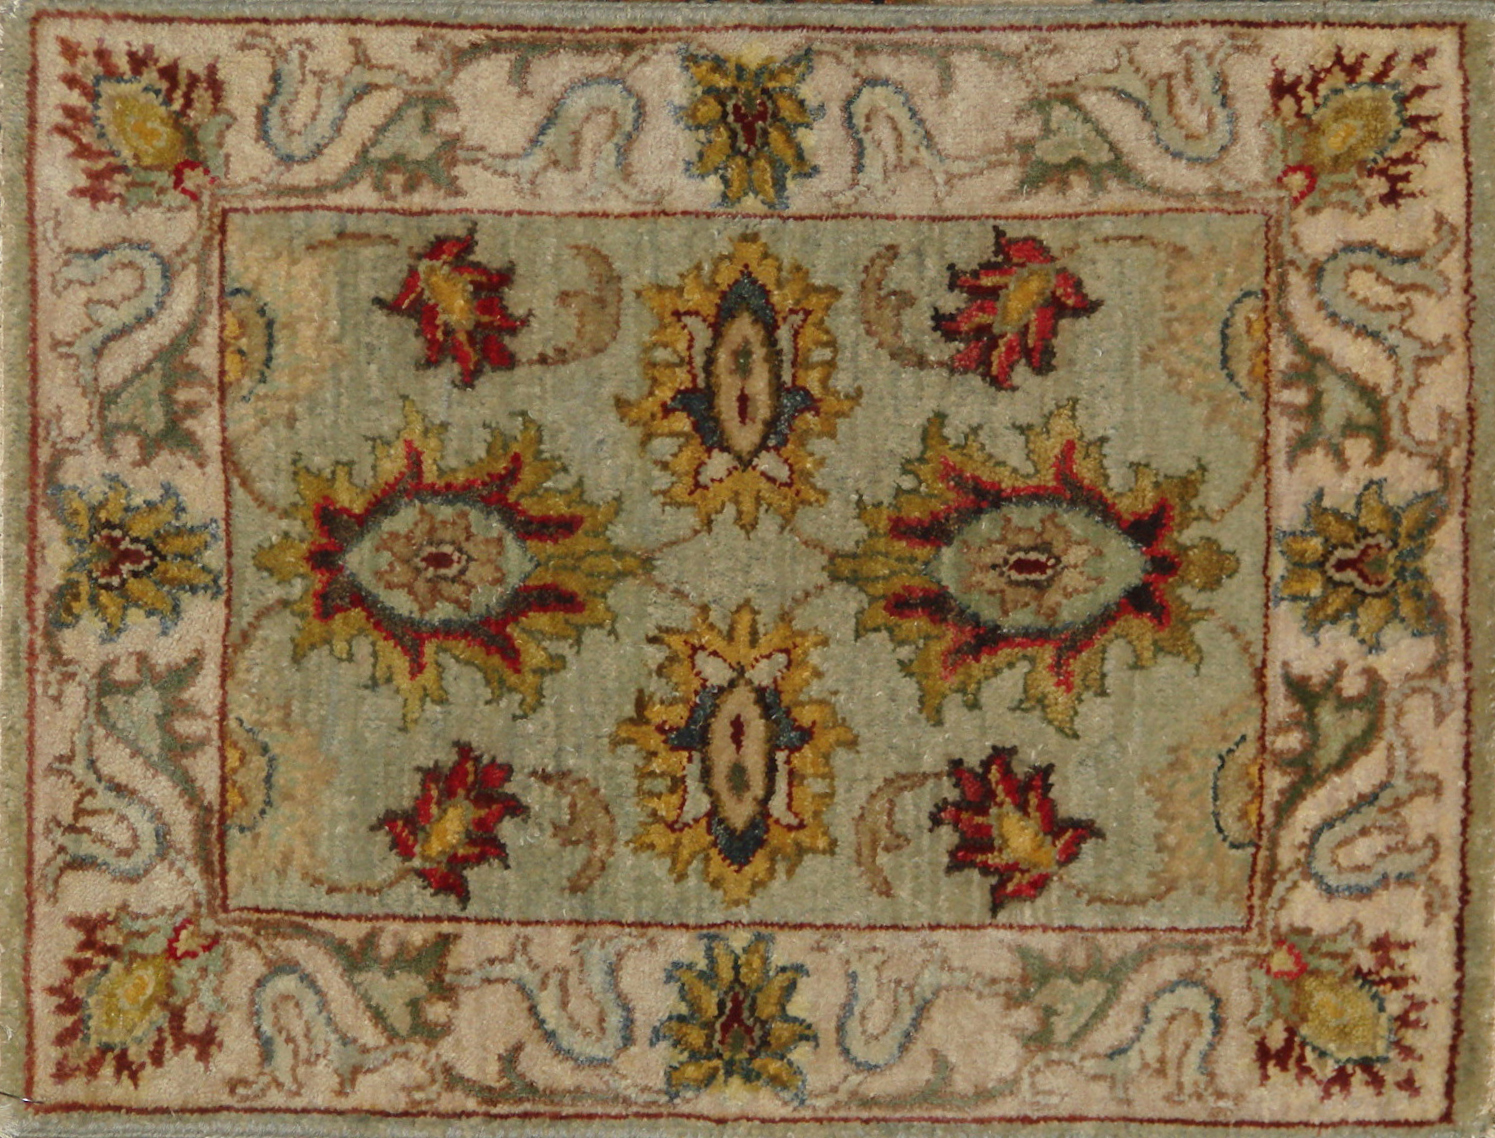 1.6X2 & SMALLER Traditional Hand Knotted Wool Area Rug - MR20732